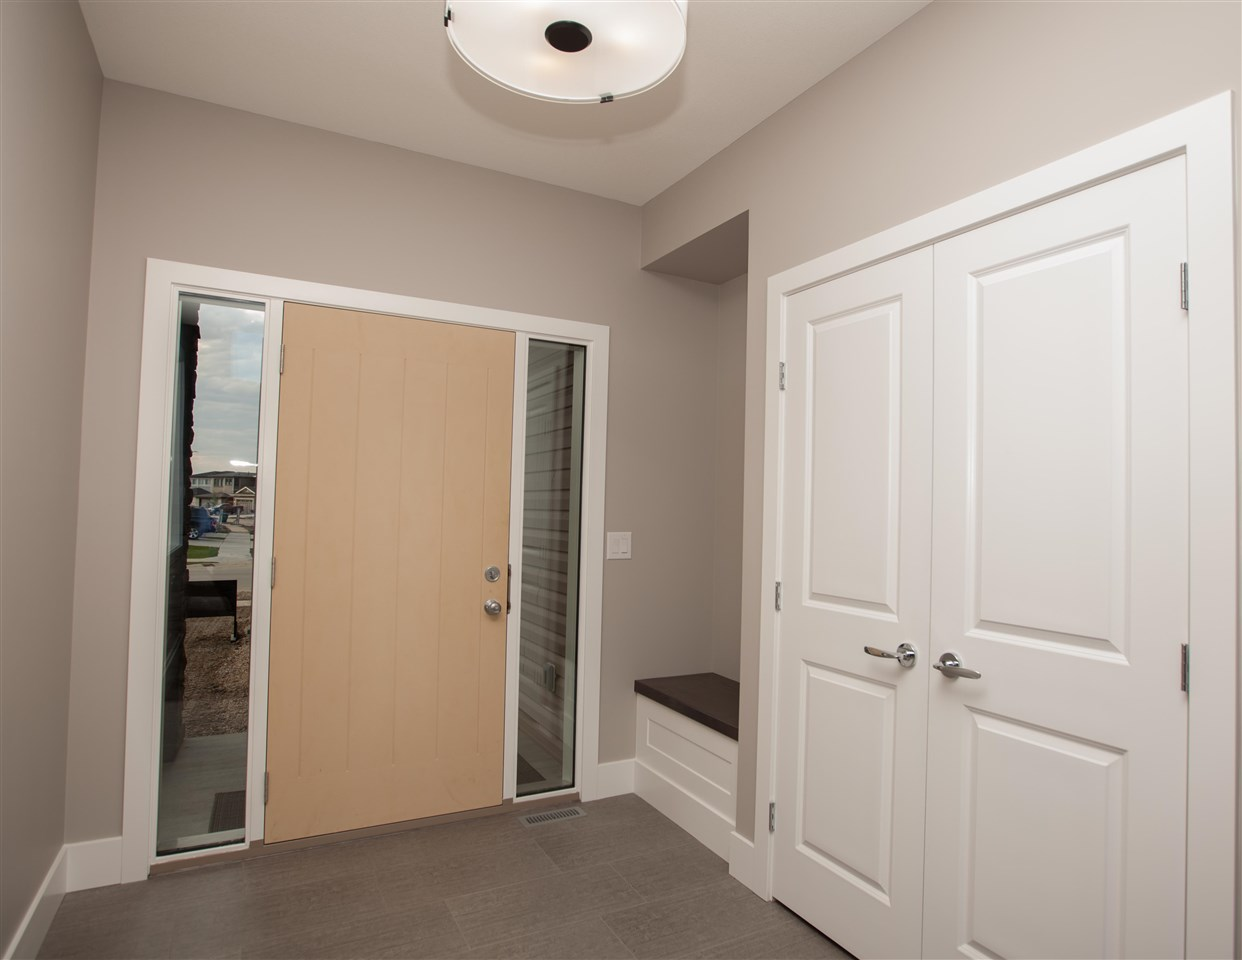 Photo 3: 12 Enchanted Way: St. Albert House for sale : MLS(r) # E4060976